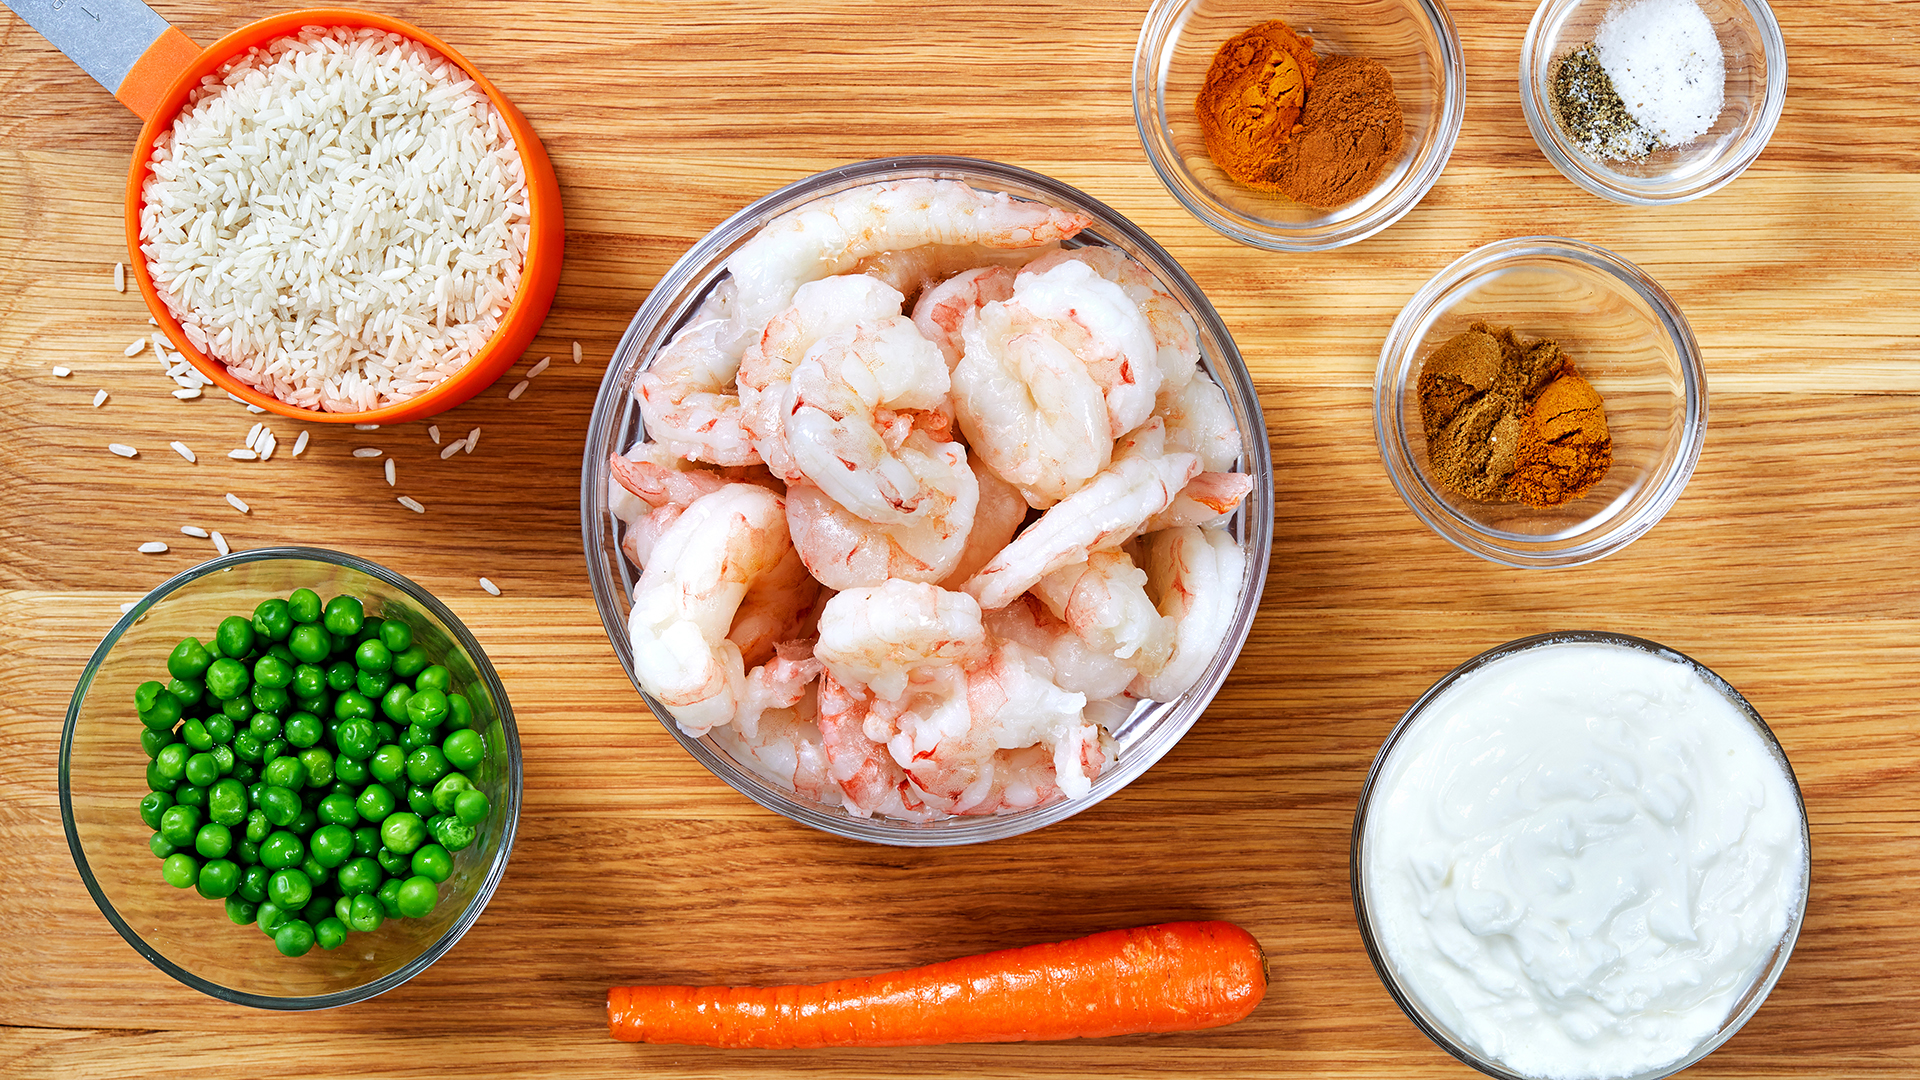 A quick, Tandoori-style meal that doesn't skimp on the shrimp